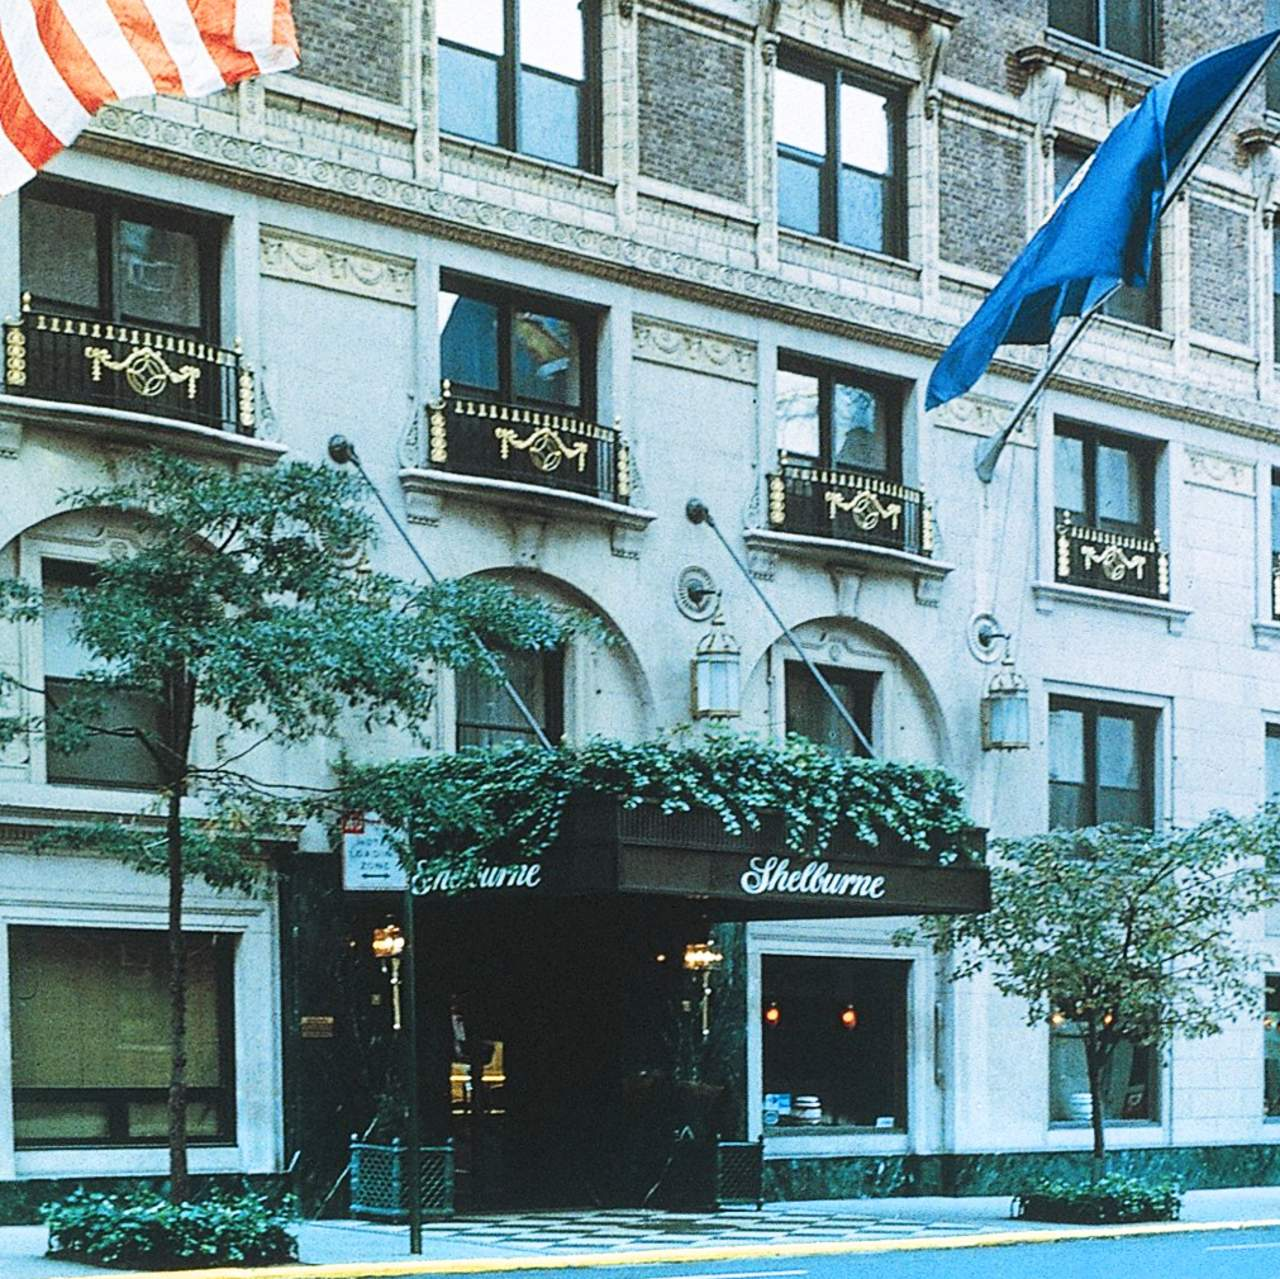 Hotel, New York: Shelburne NYC - An Affinia Hotel